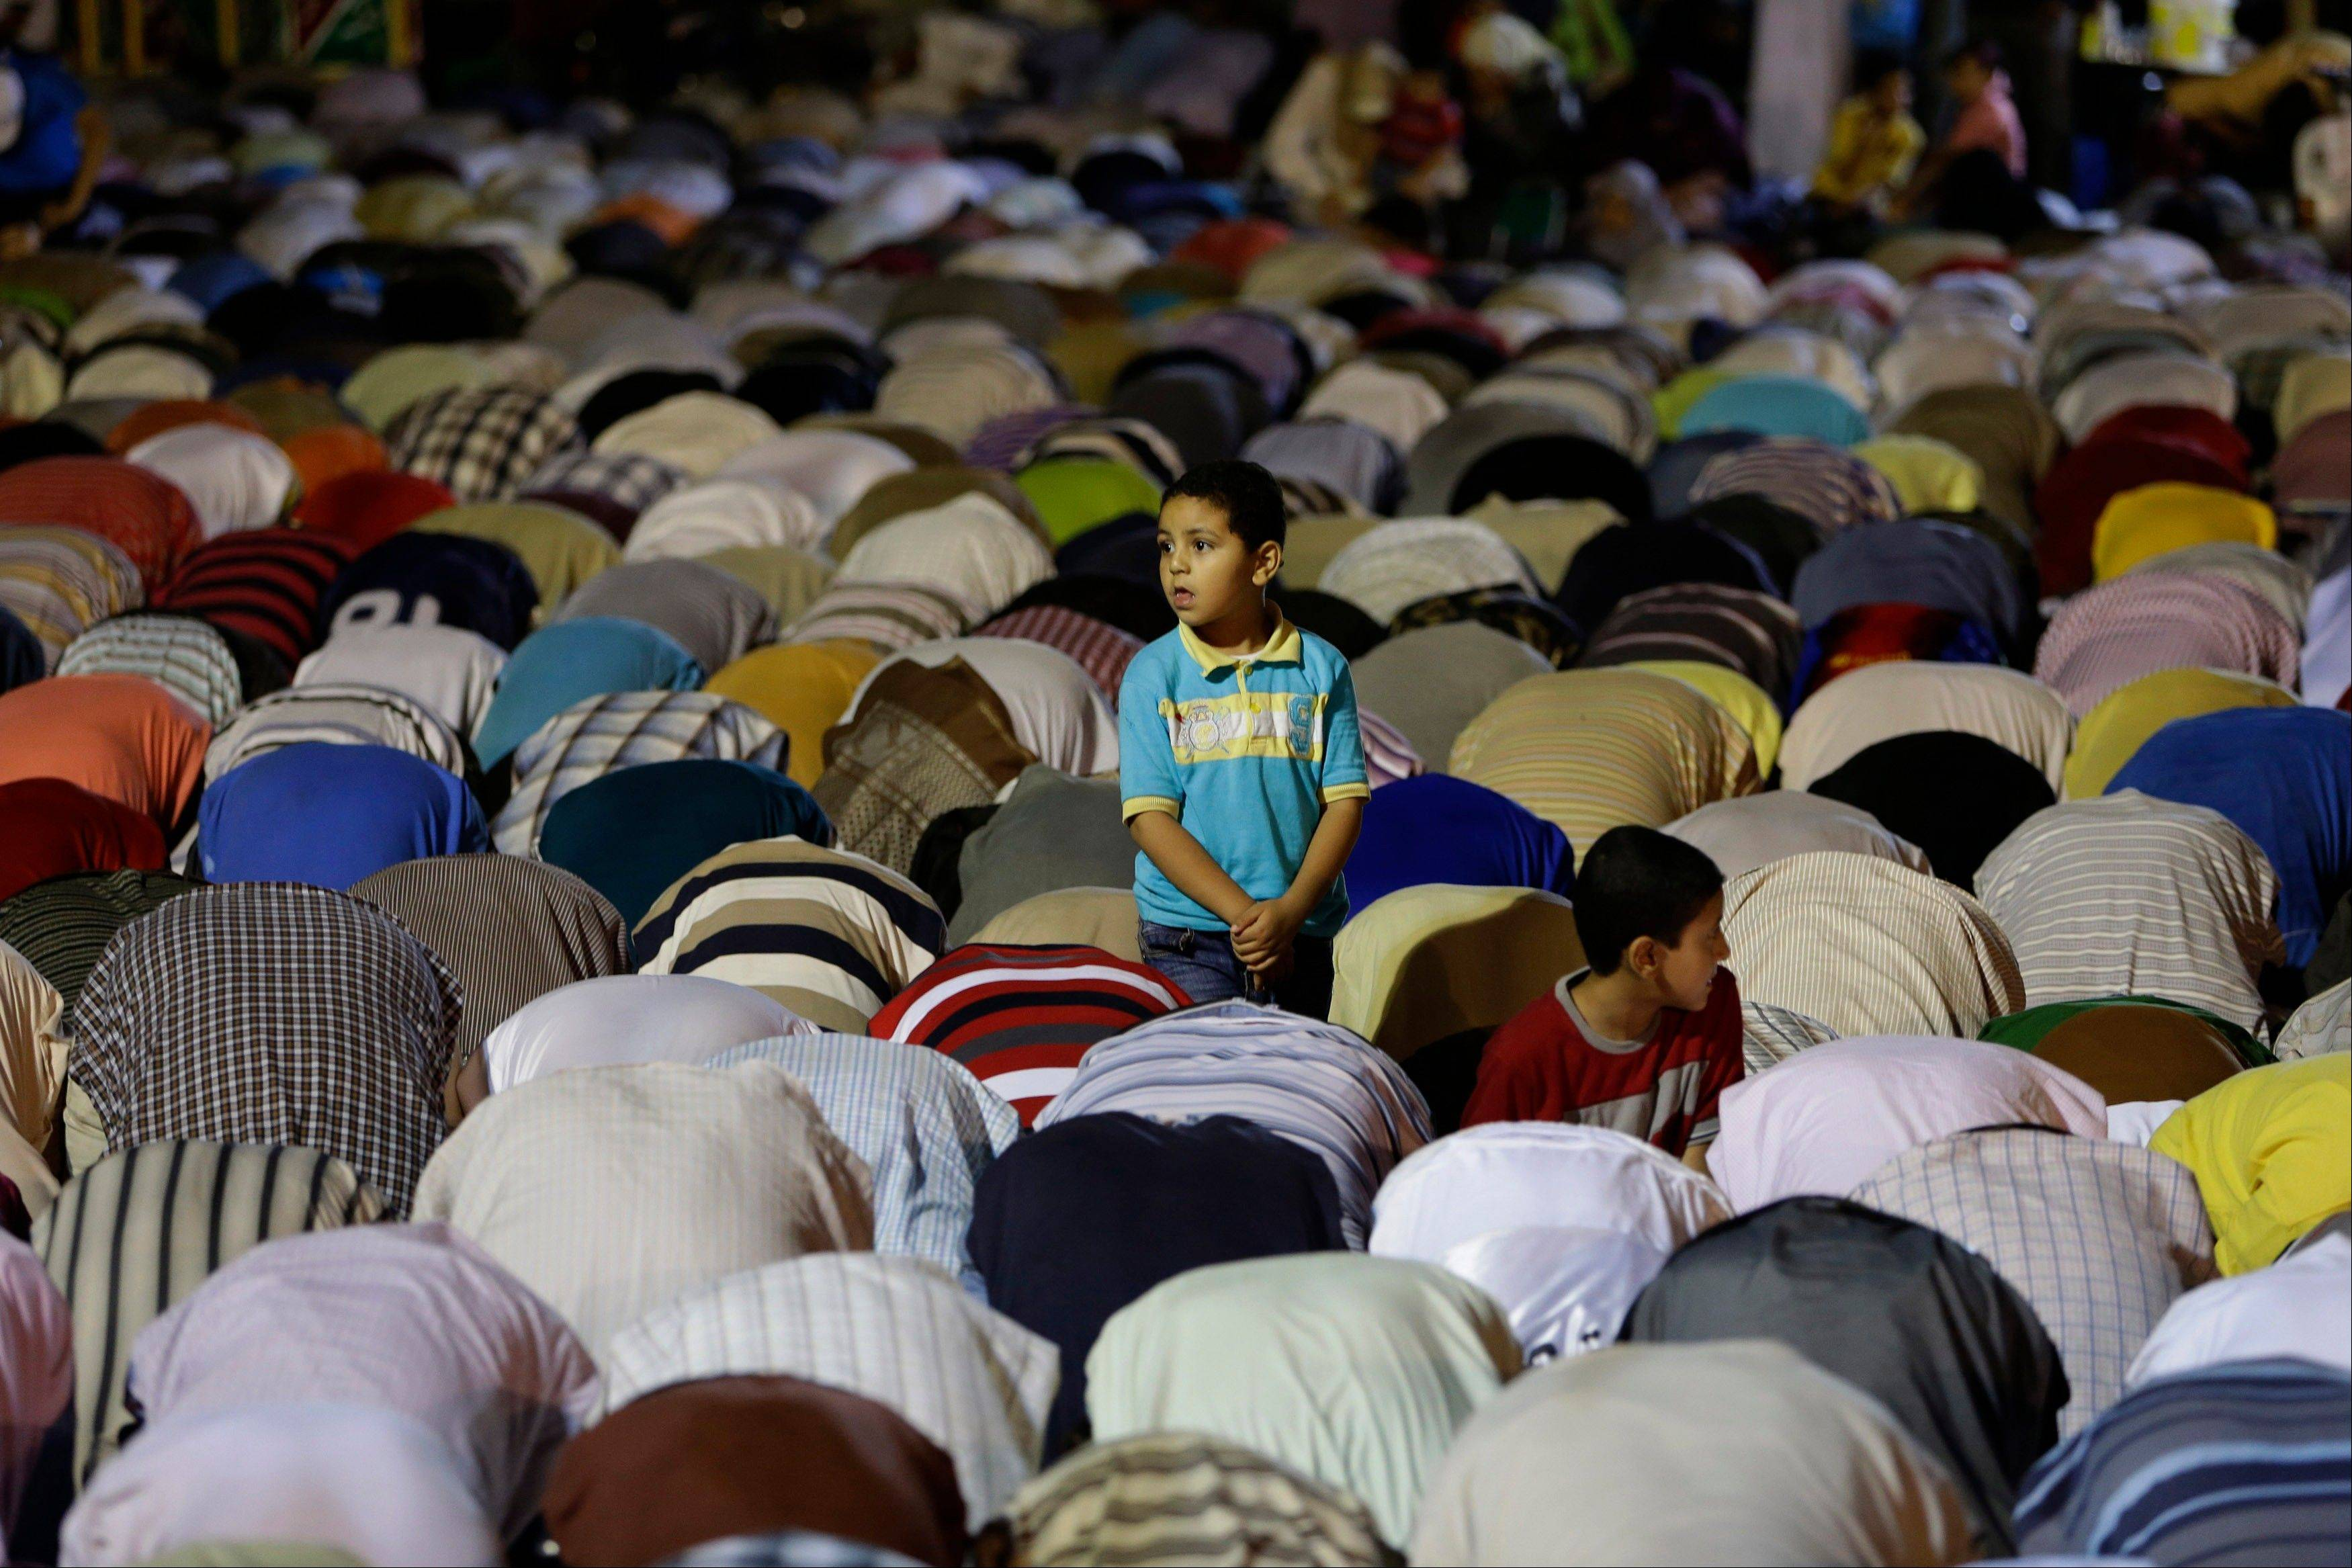 An Egyptian boy stands among the supporters of ousted Egypt's President Mohammed Morsi, who are offering the Tarawih prayer, after the evening meal when Muslims break their fast during the Islamic month of Ramadan, in Nasr City, Cairo, Egypt, Wednesday July 10, 2013.